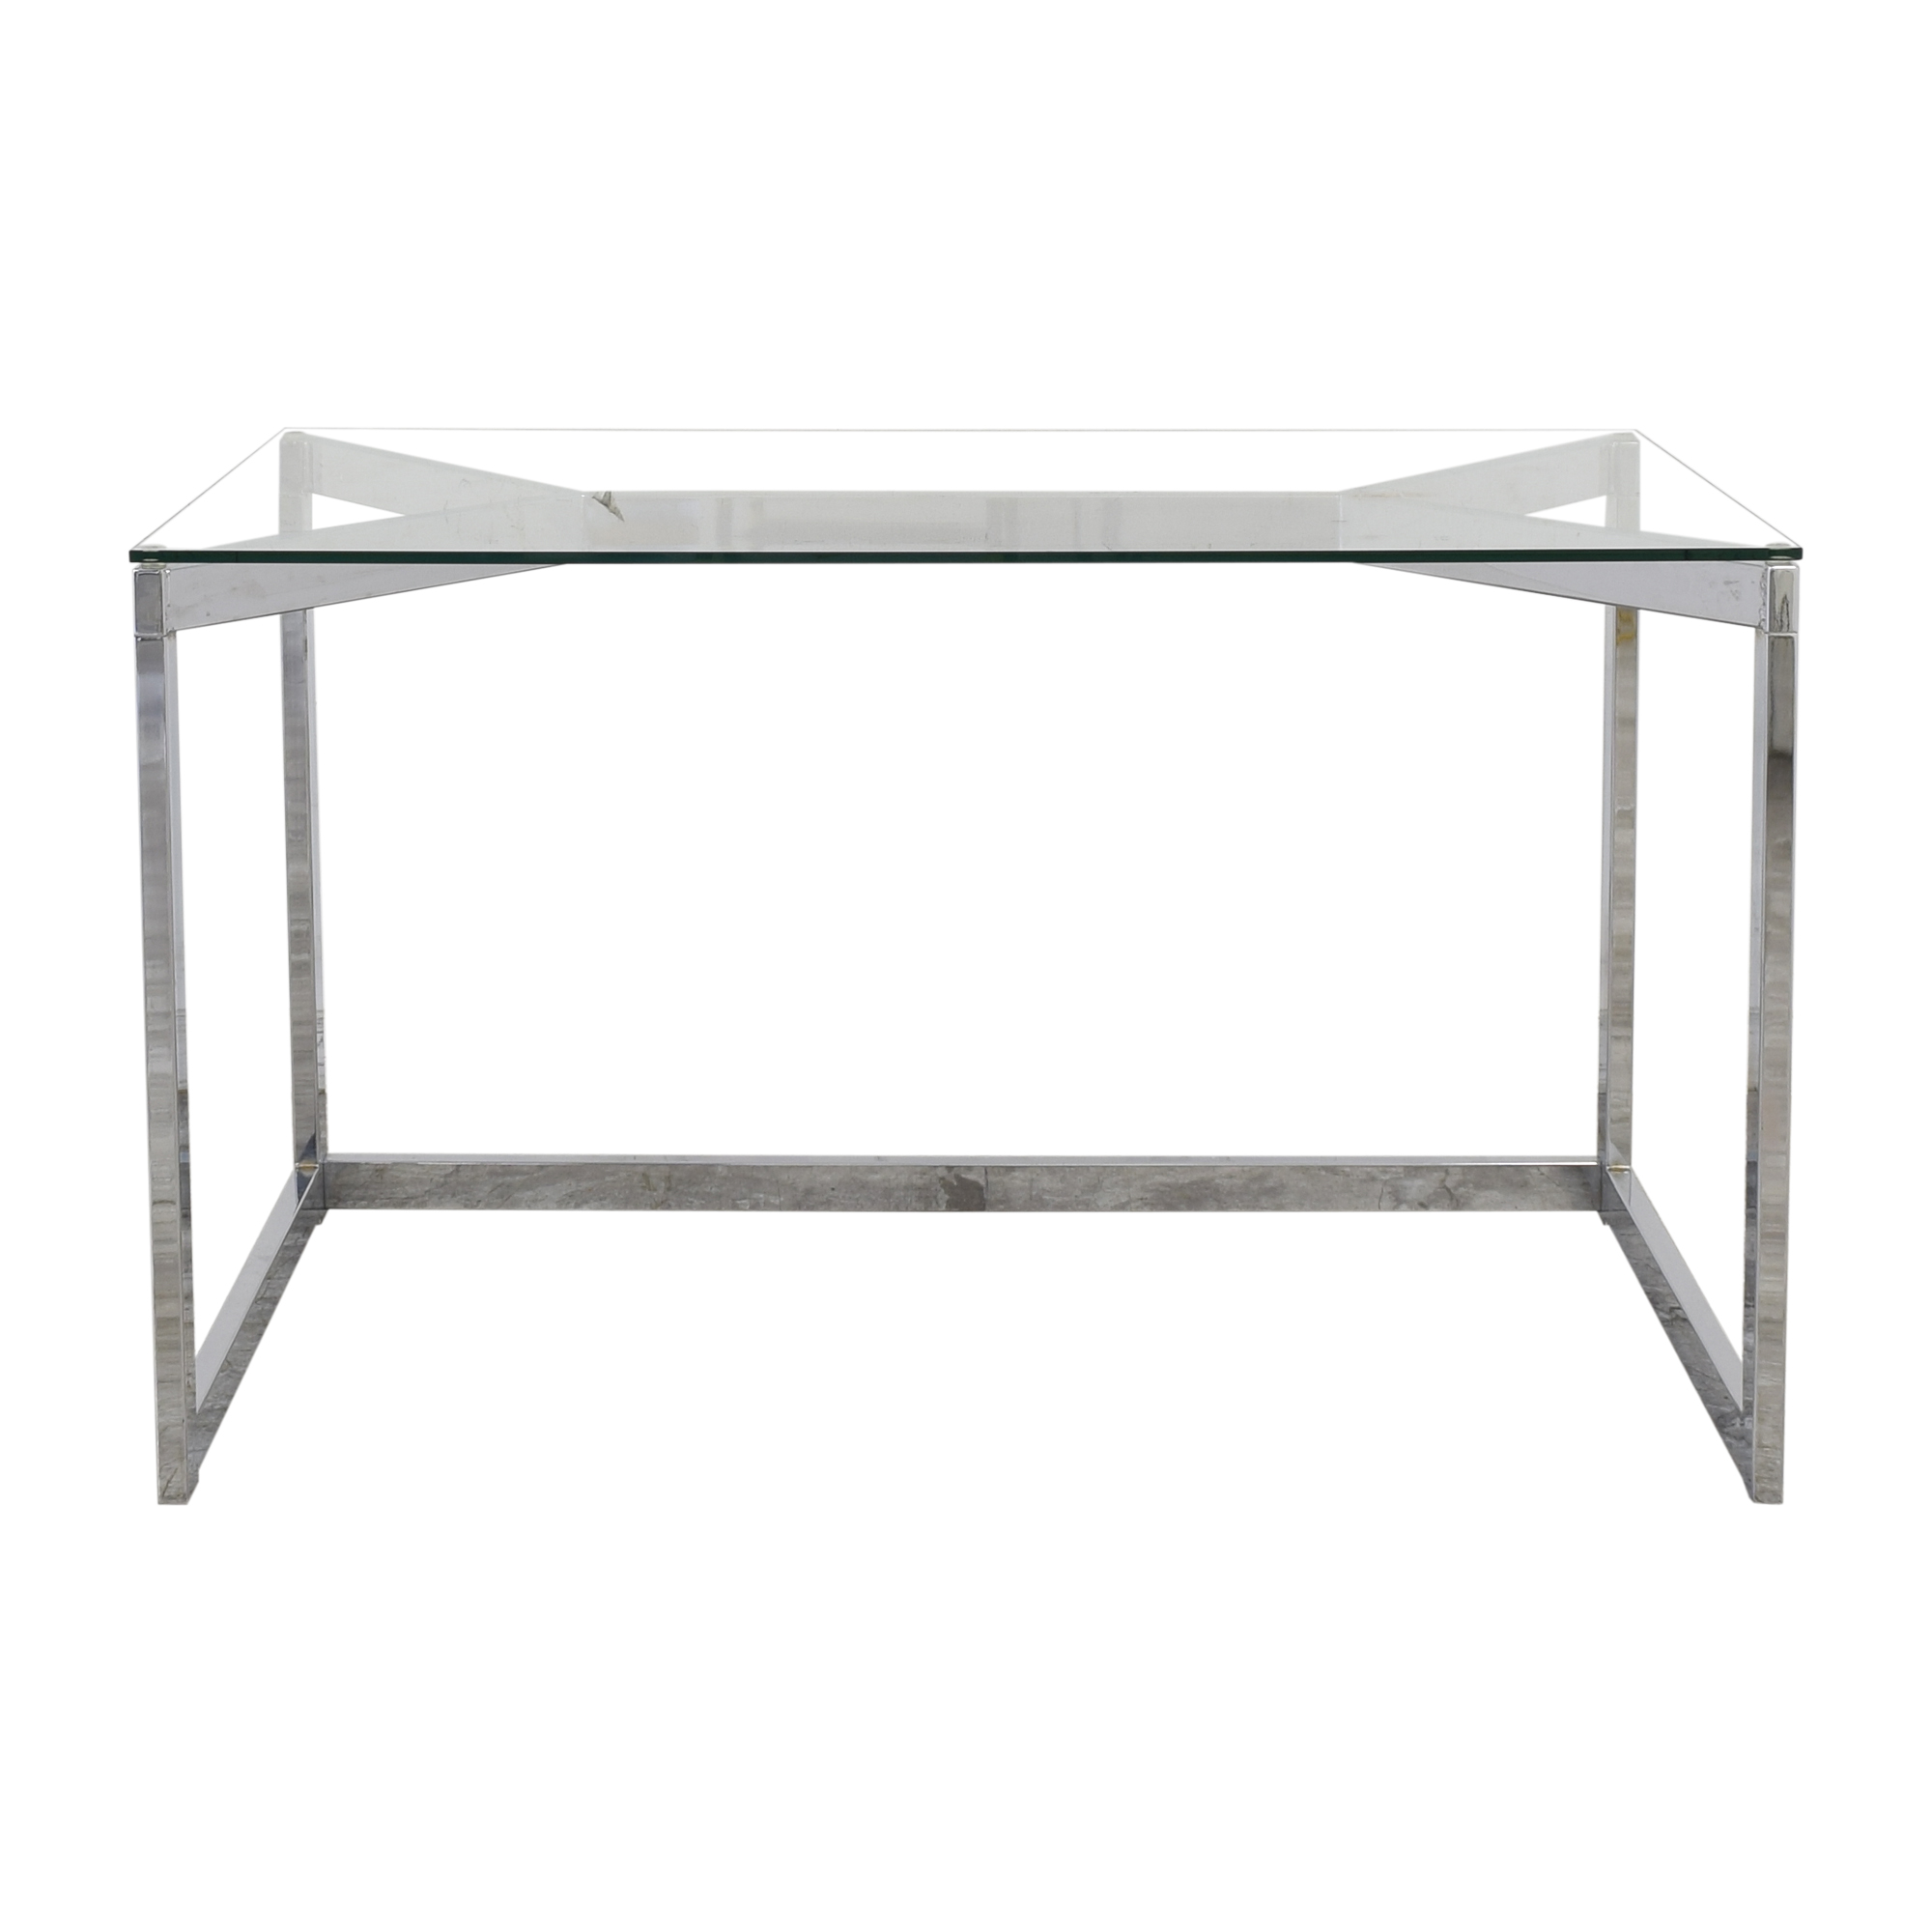 CB2 CB2 Tesso Desk Tables